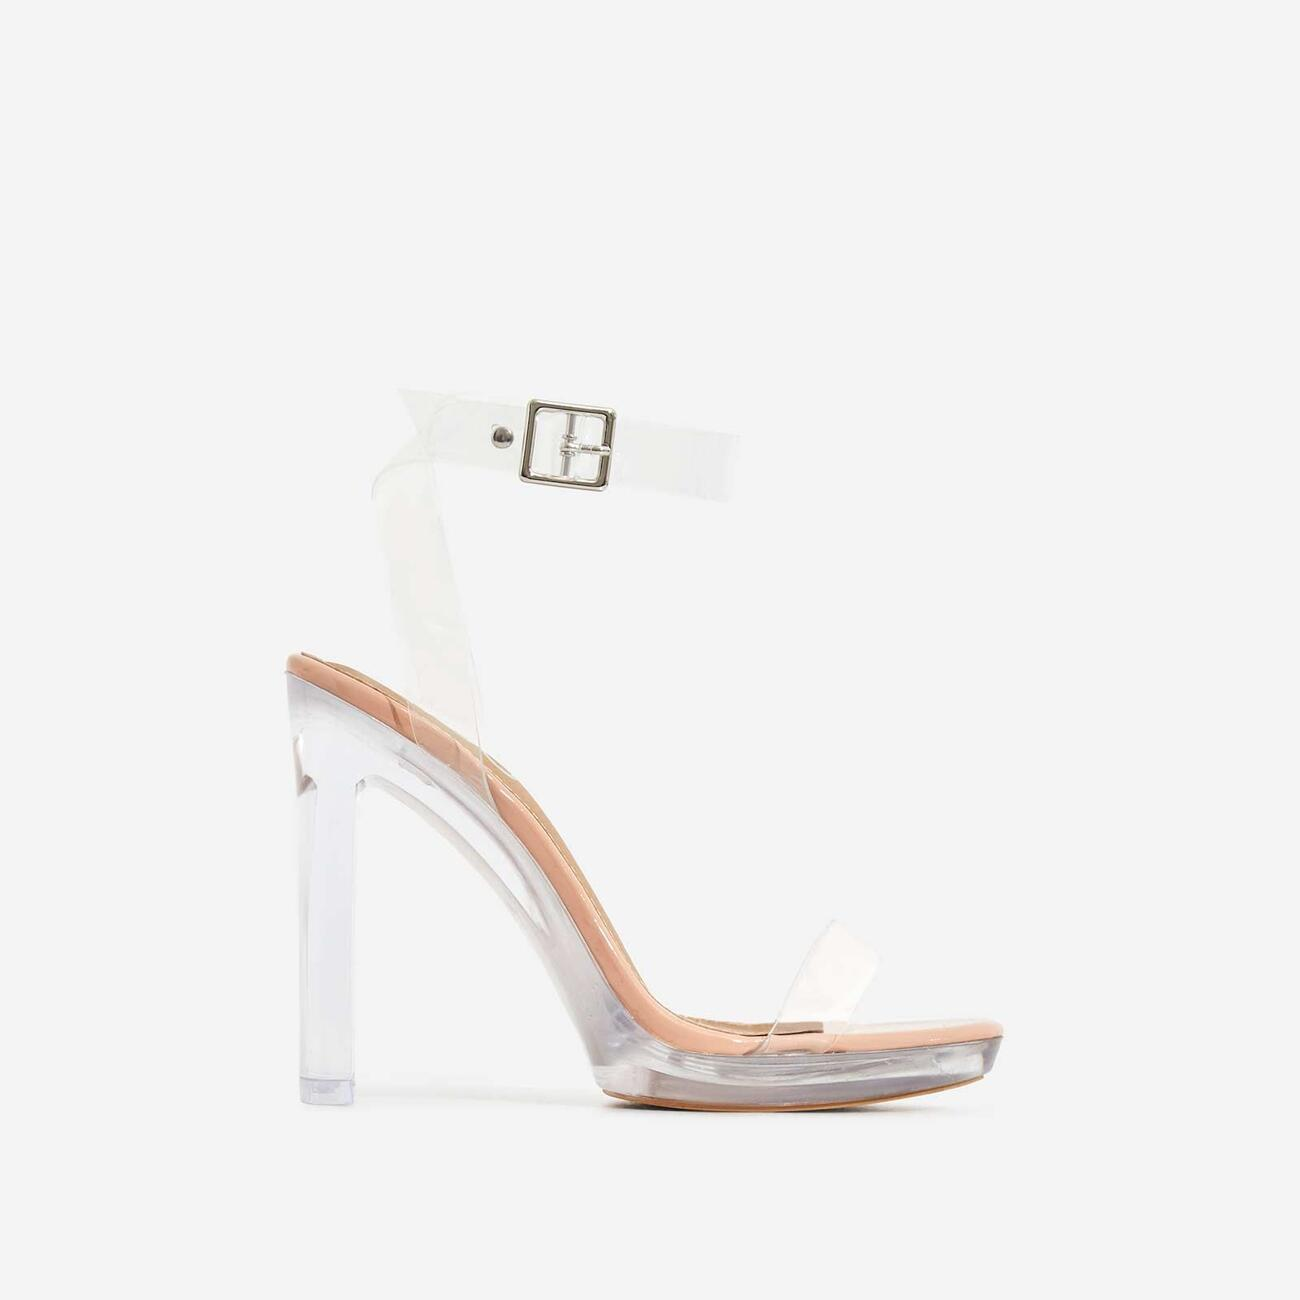 Icy Platform Barely There Perspex Thin Block Clear Heel In Nude Patent Image 1